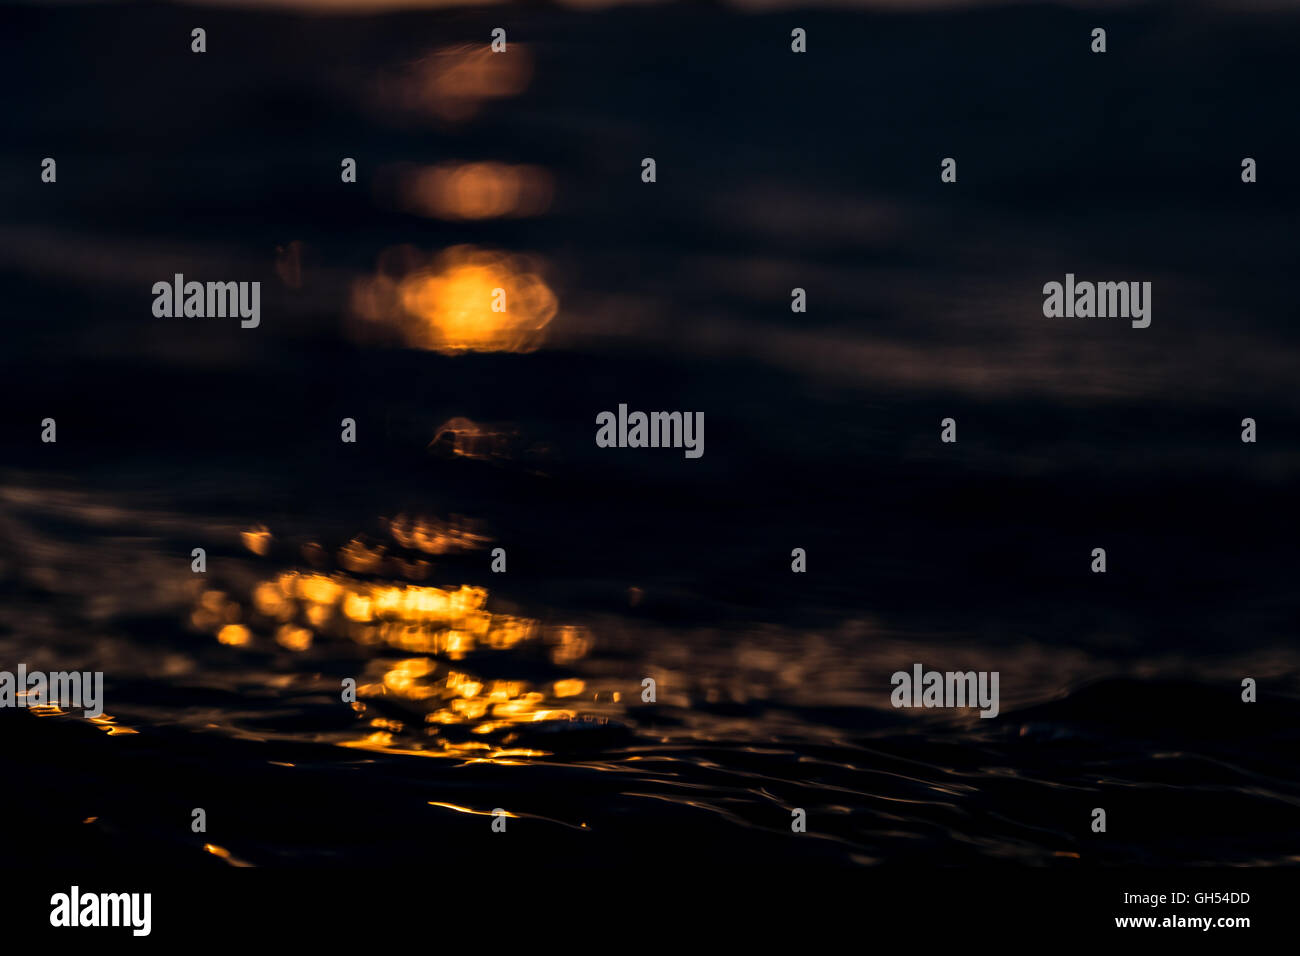 Reflection of the sunset on the ocean surface - Stock Image